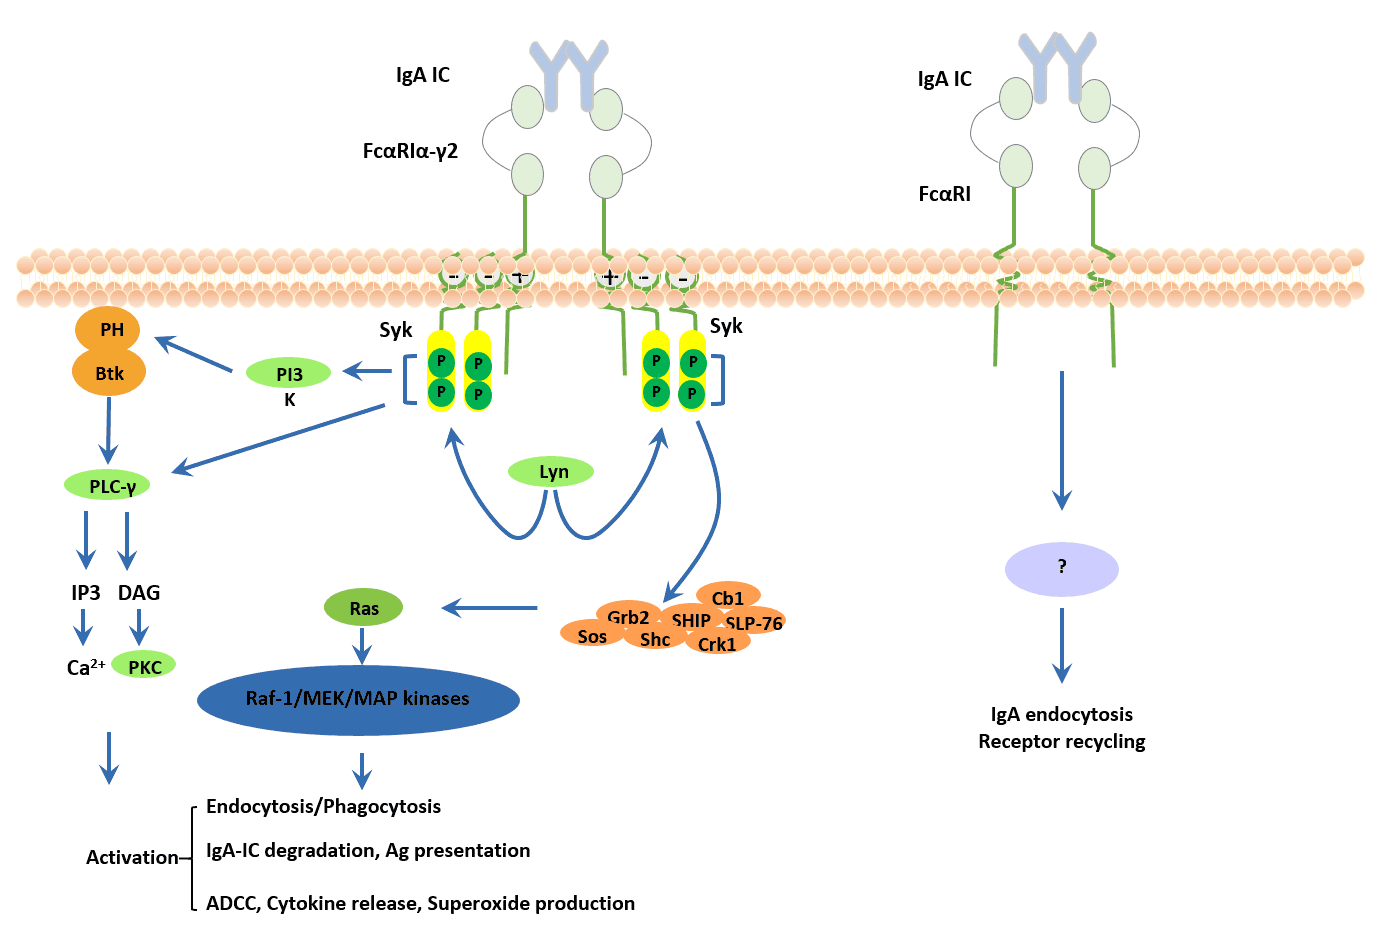 Signaling pathways triggered by FcαRI